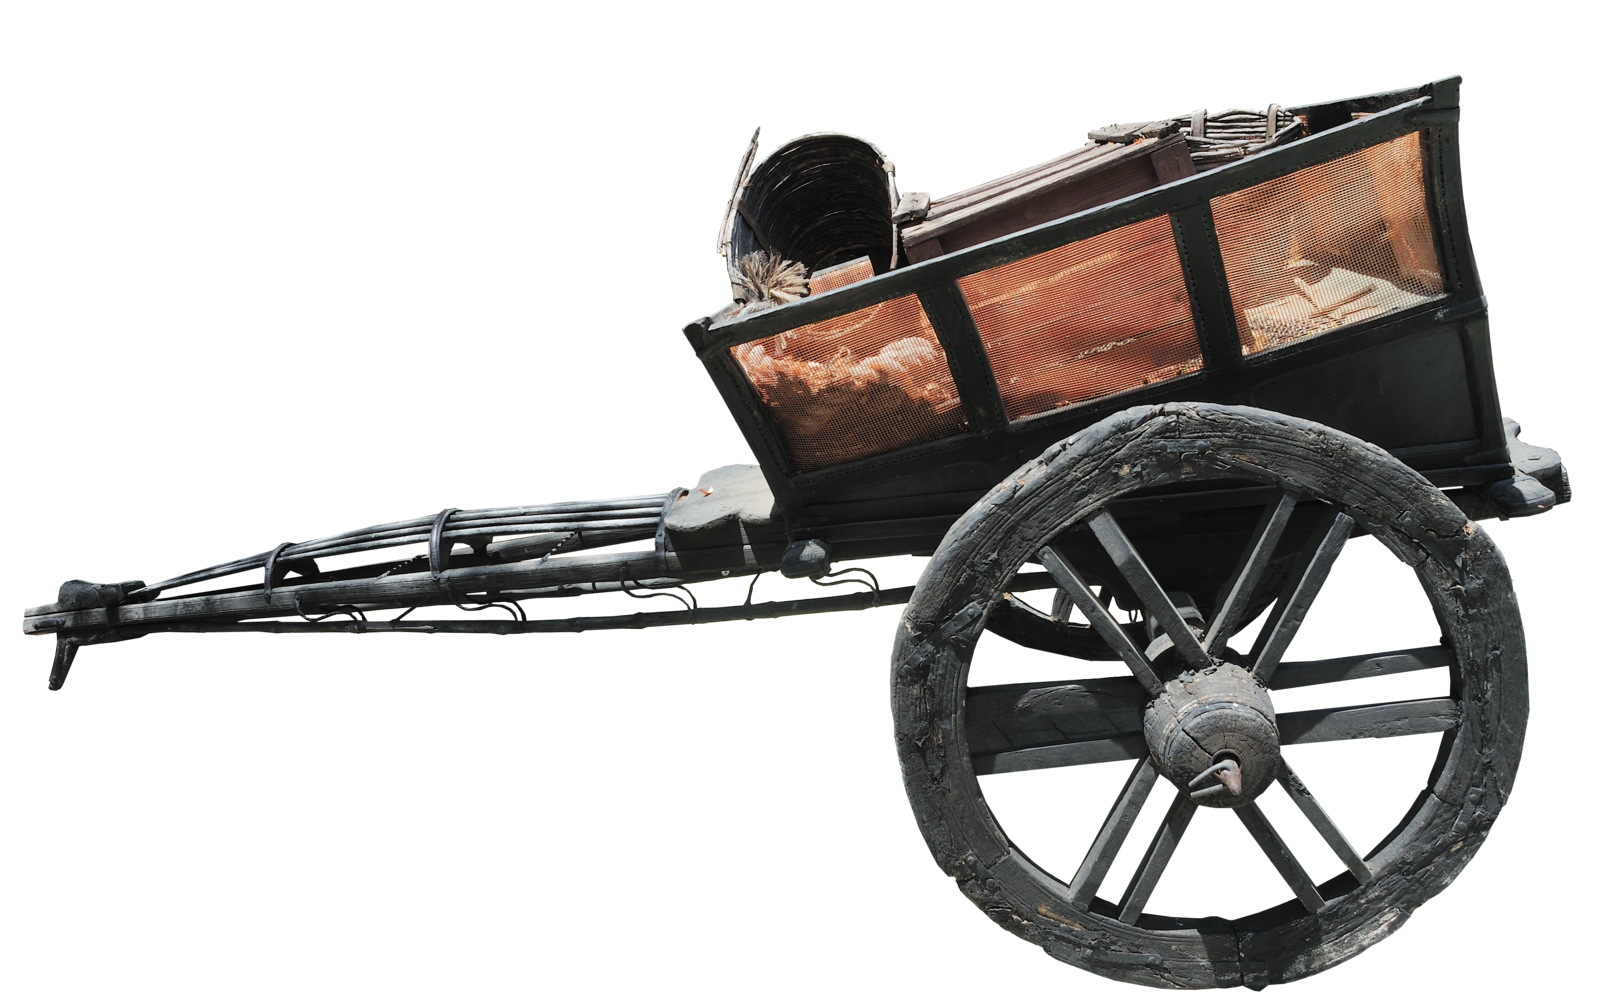 Wagon clipart old transportation. Cart png by evelivesey